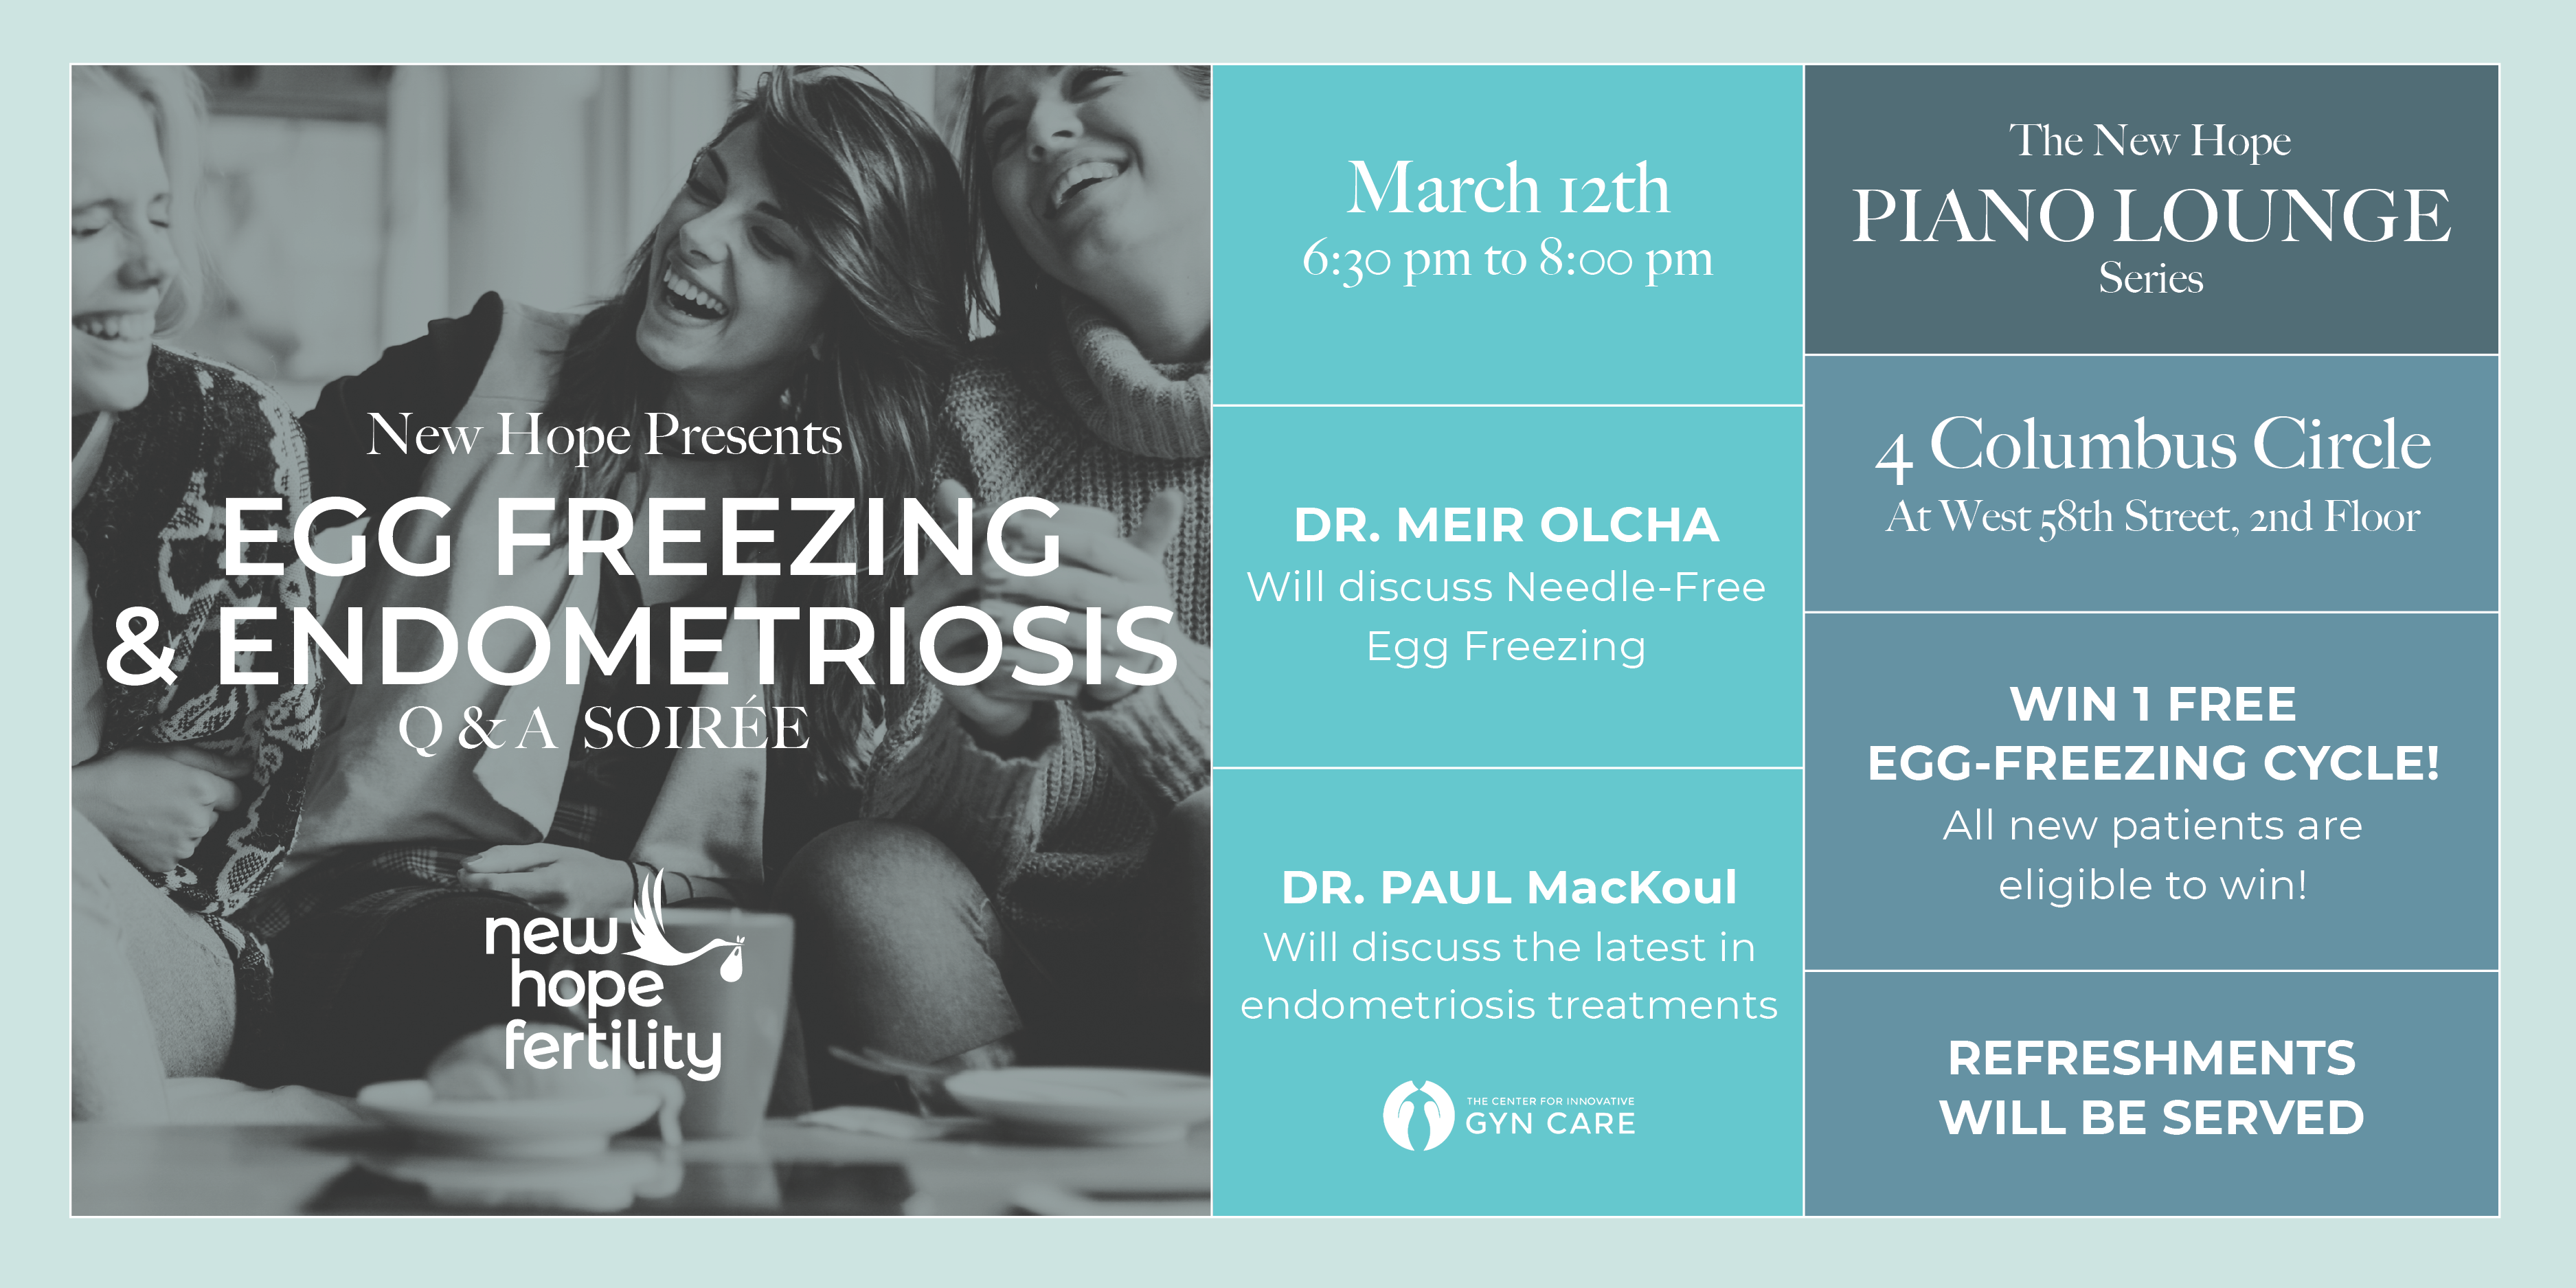 March 12 Endometriosis Egg Freezing Event